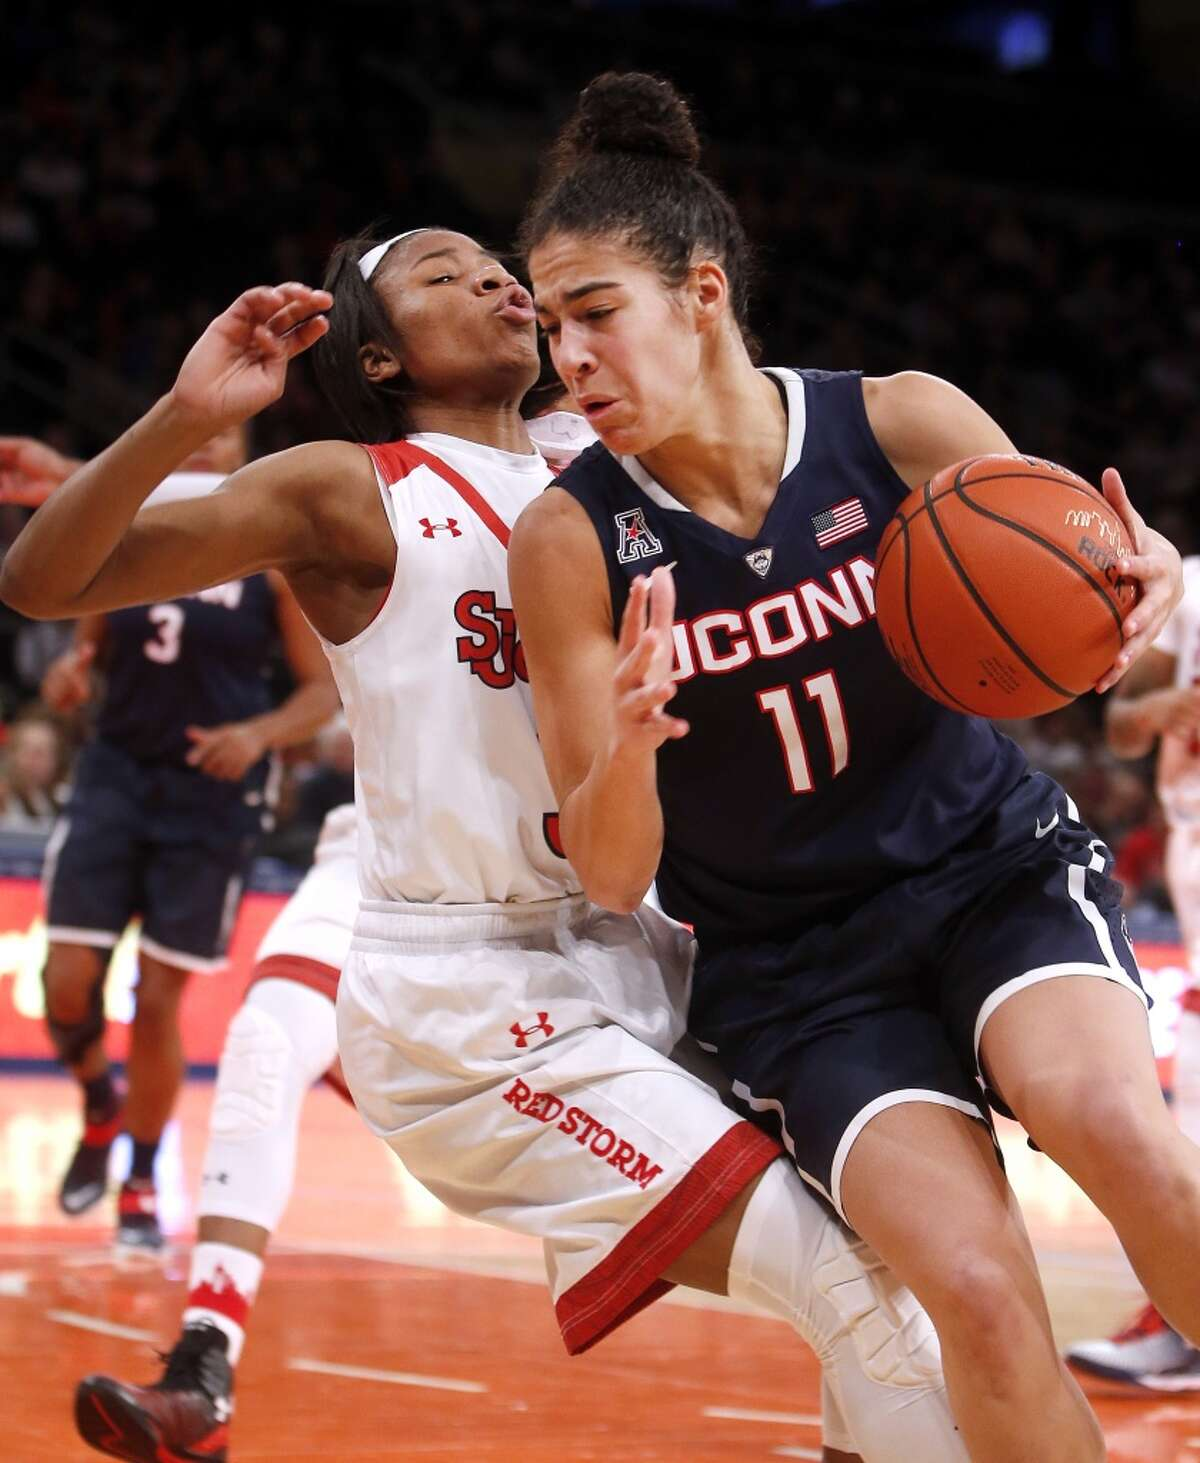 Connecticut's Kia Nurse (11) is fouled as she drives against St. John's Aliyyah Handford during the second half of an NCAA college basketball game, Sunday, Jan. 4, 2015, in New York. Connecticut defeated St. John's 70-54. (AP Photo/Jason DeCrow)